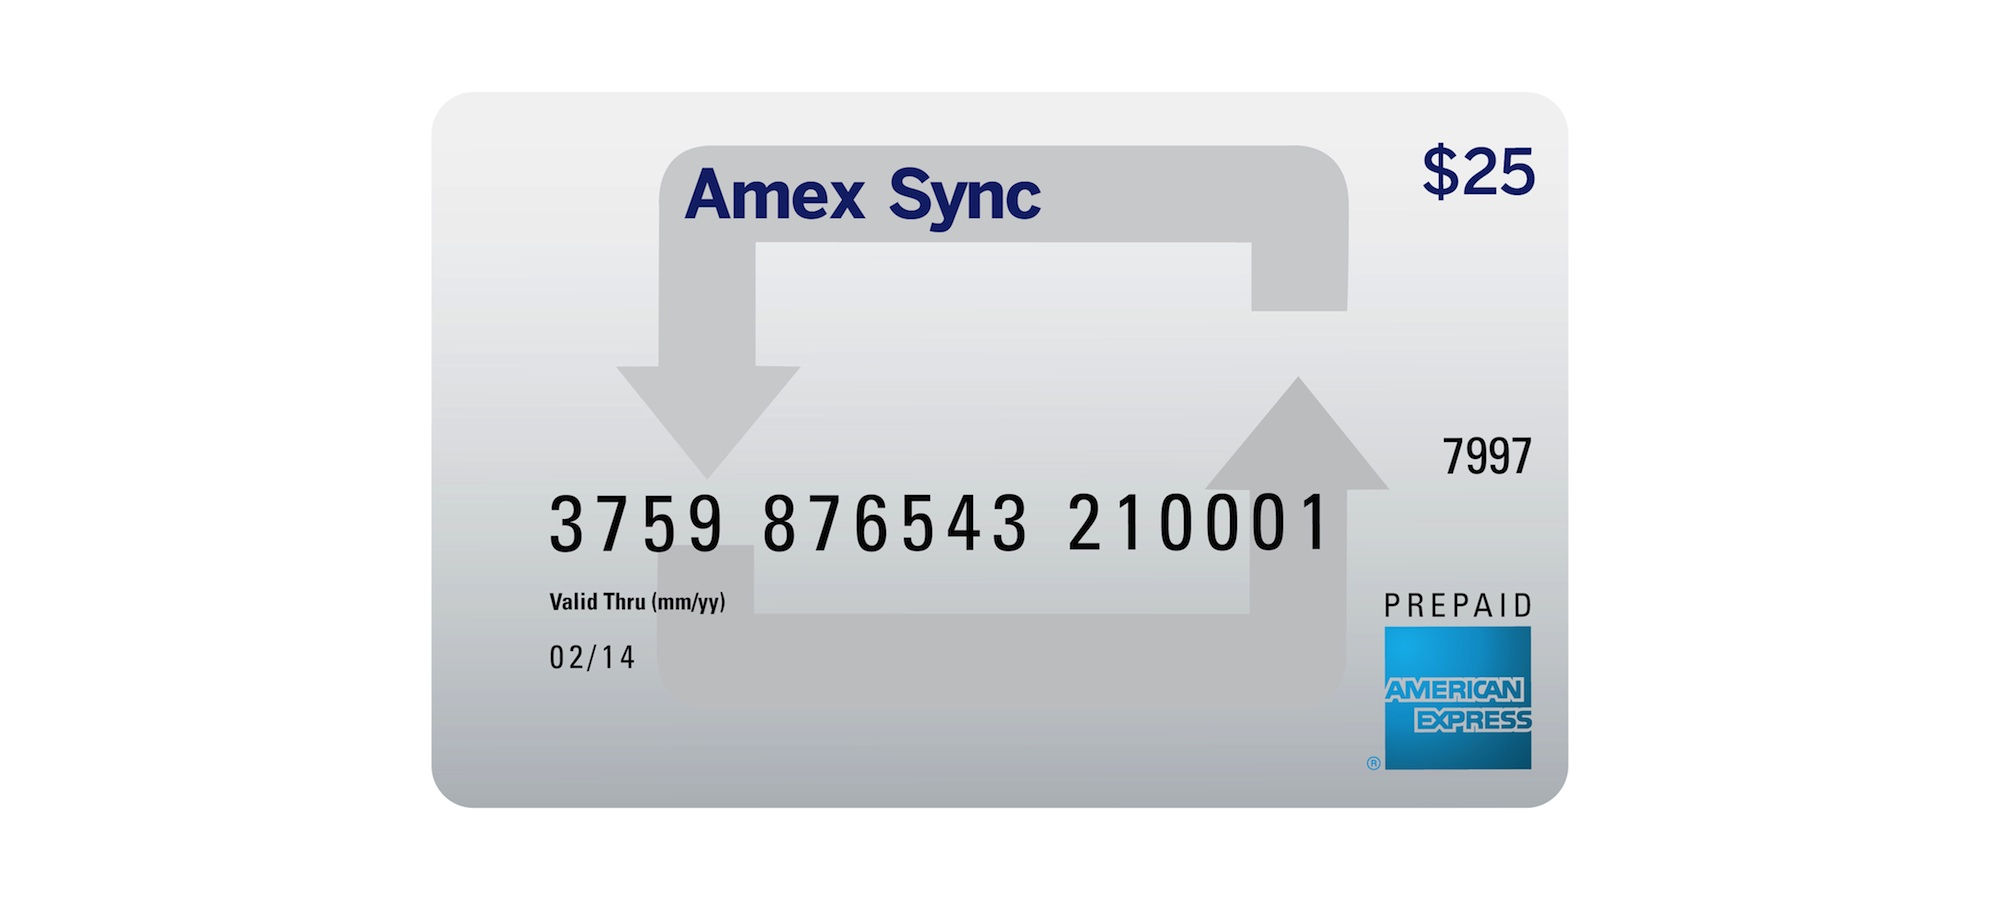 amex-sync-twitter-card-fpo round